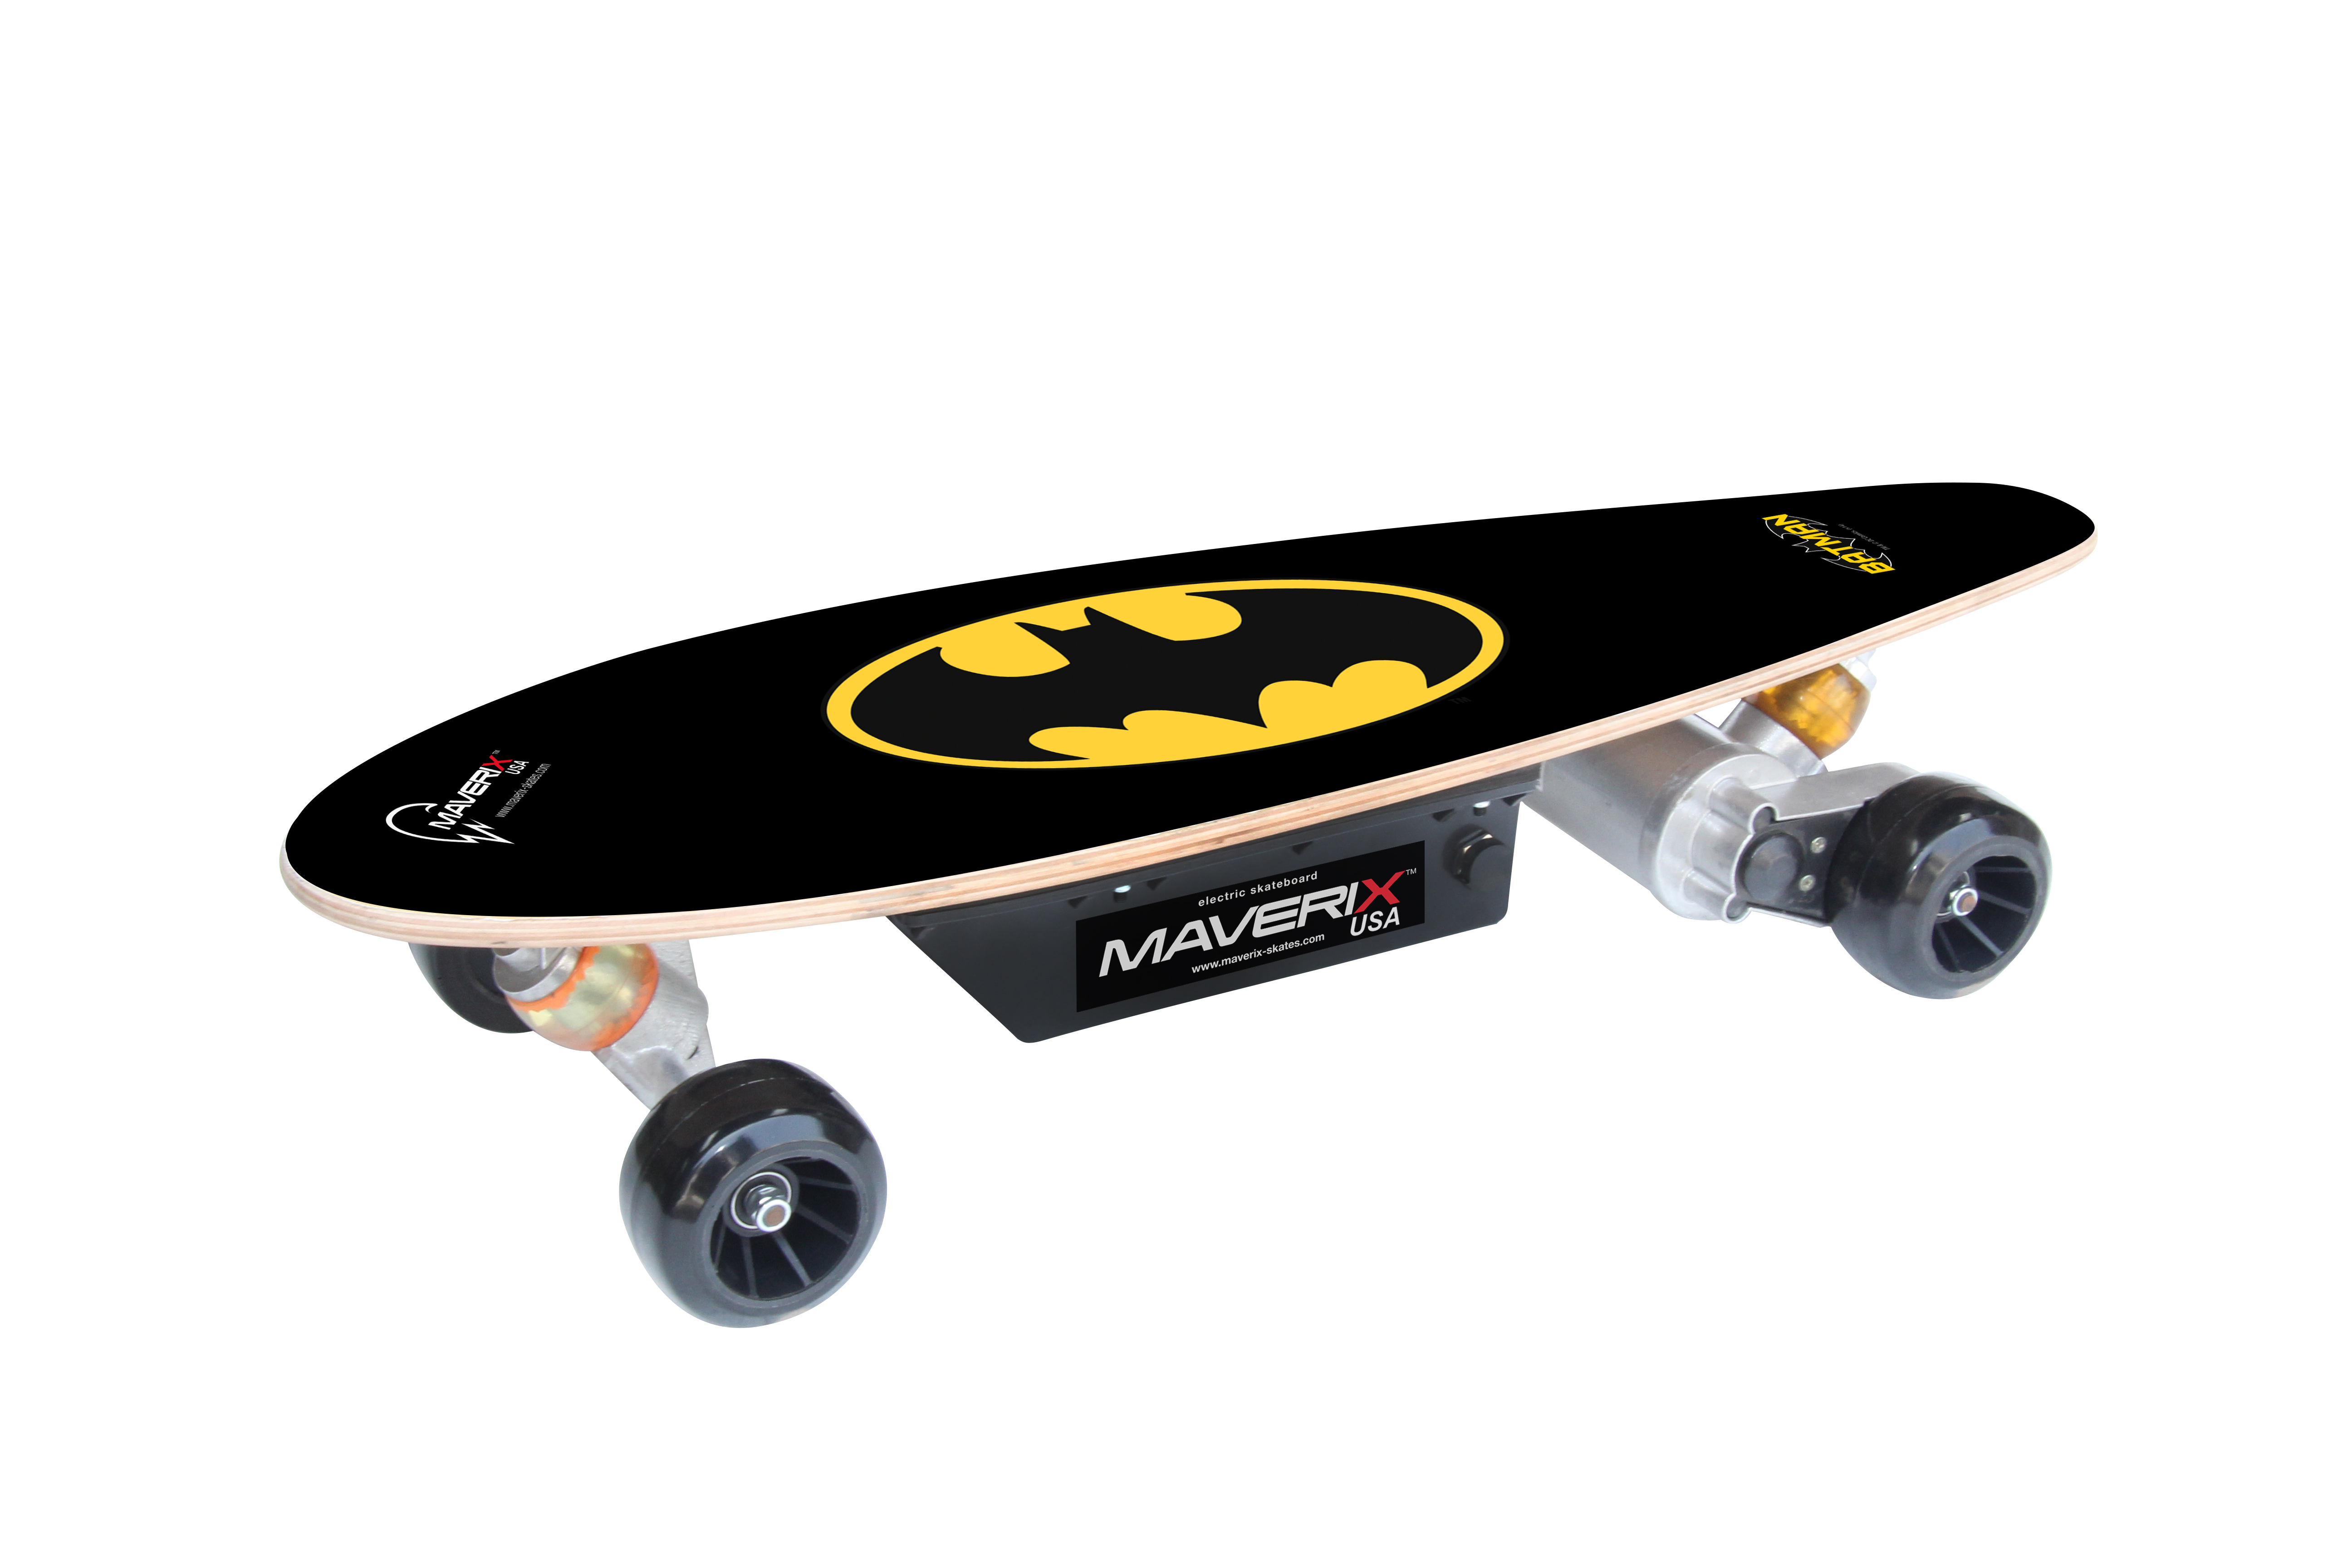 Fantastic Motorized Skateboard Models to Buy in 2019